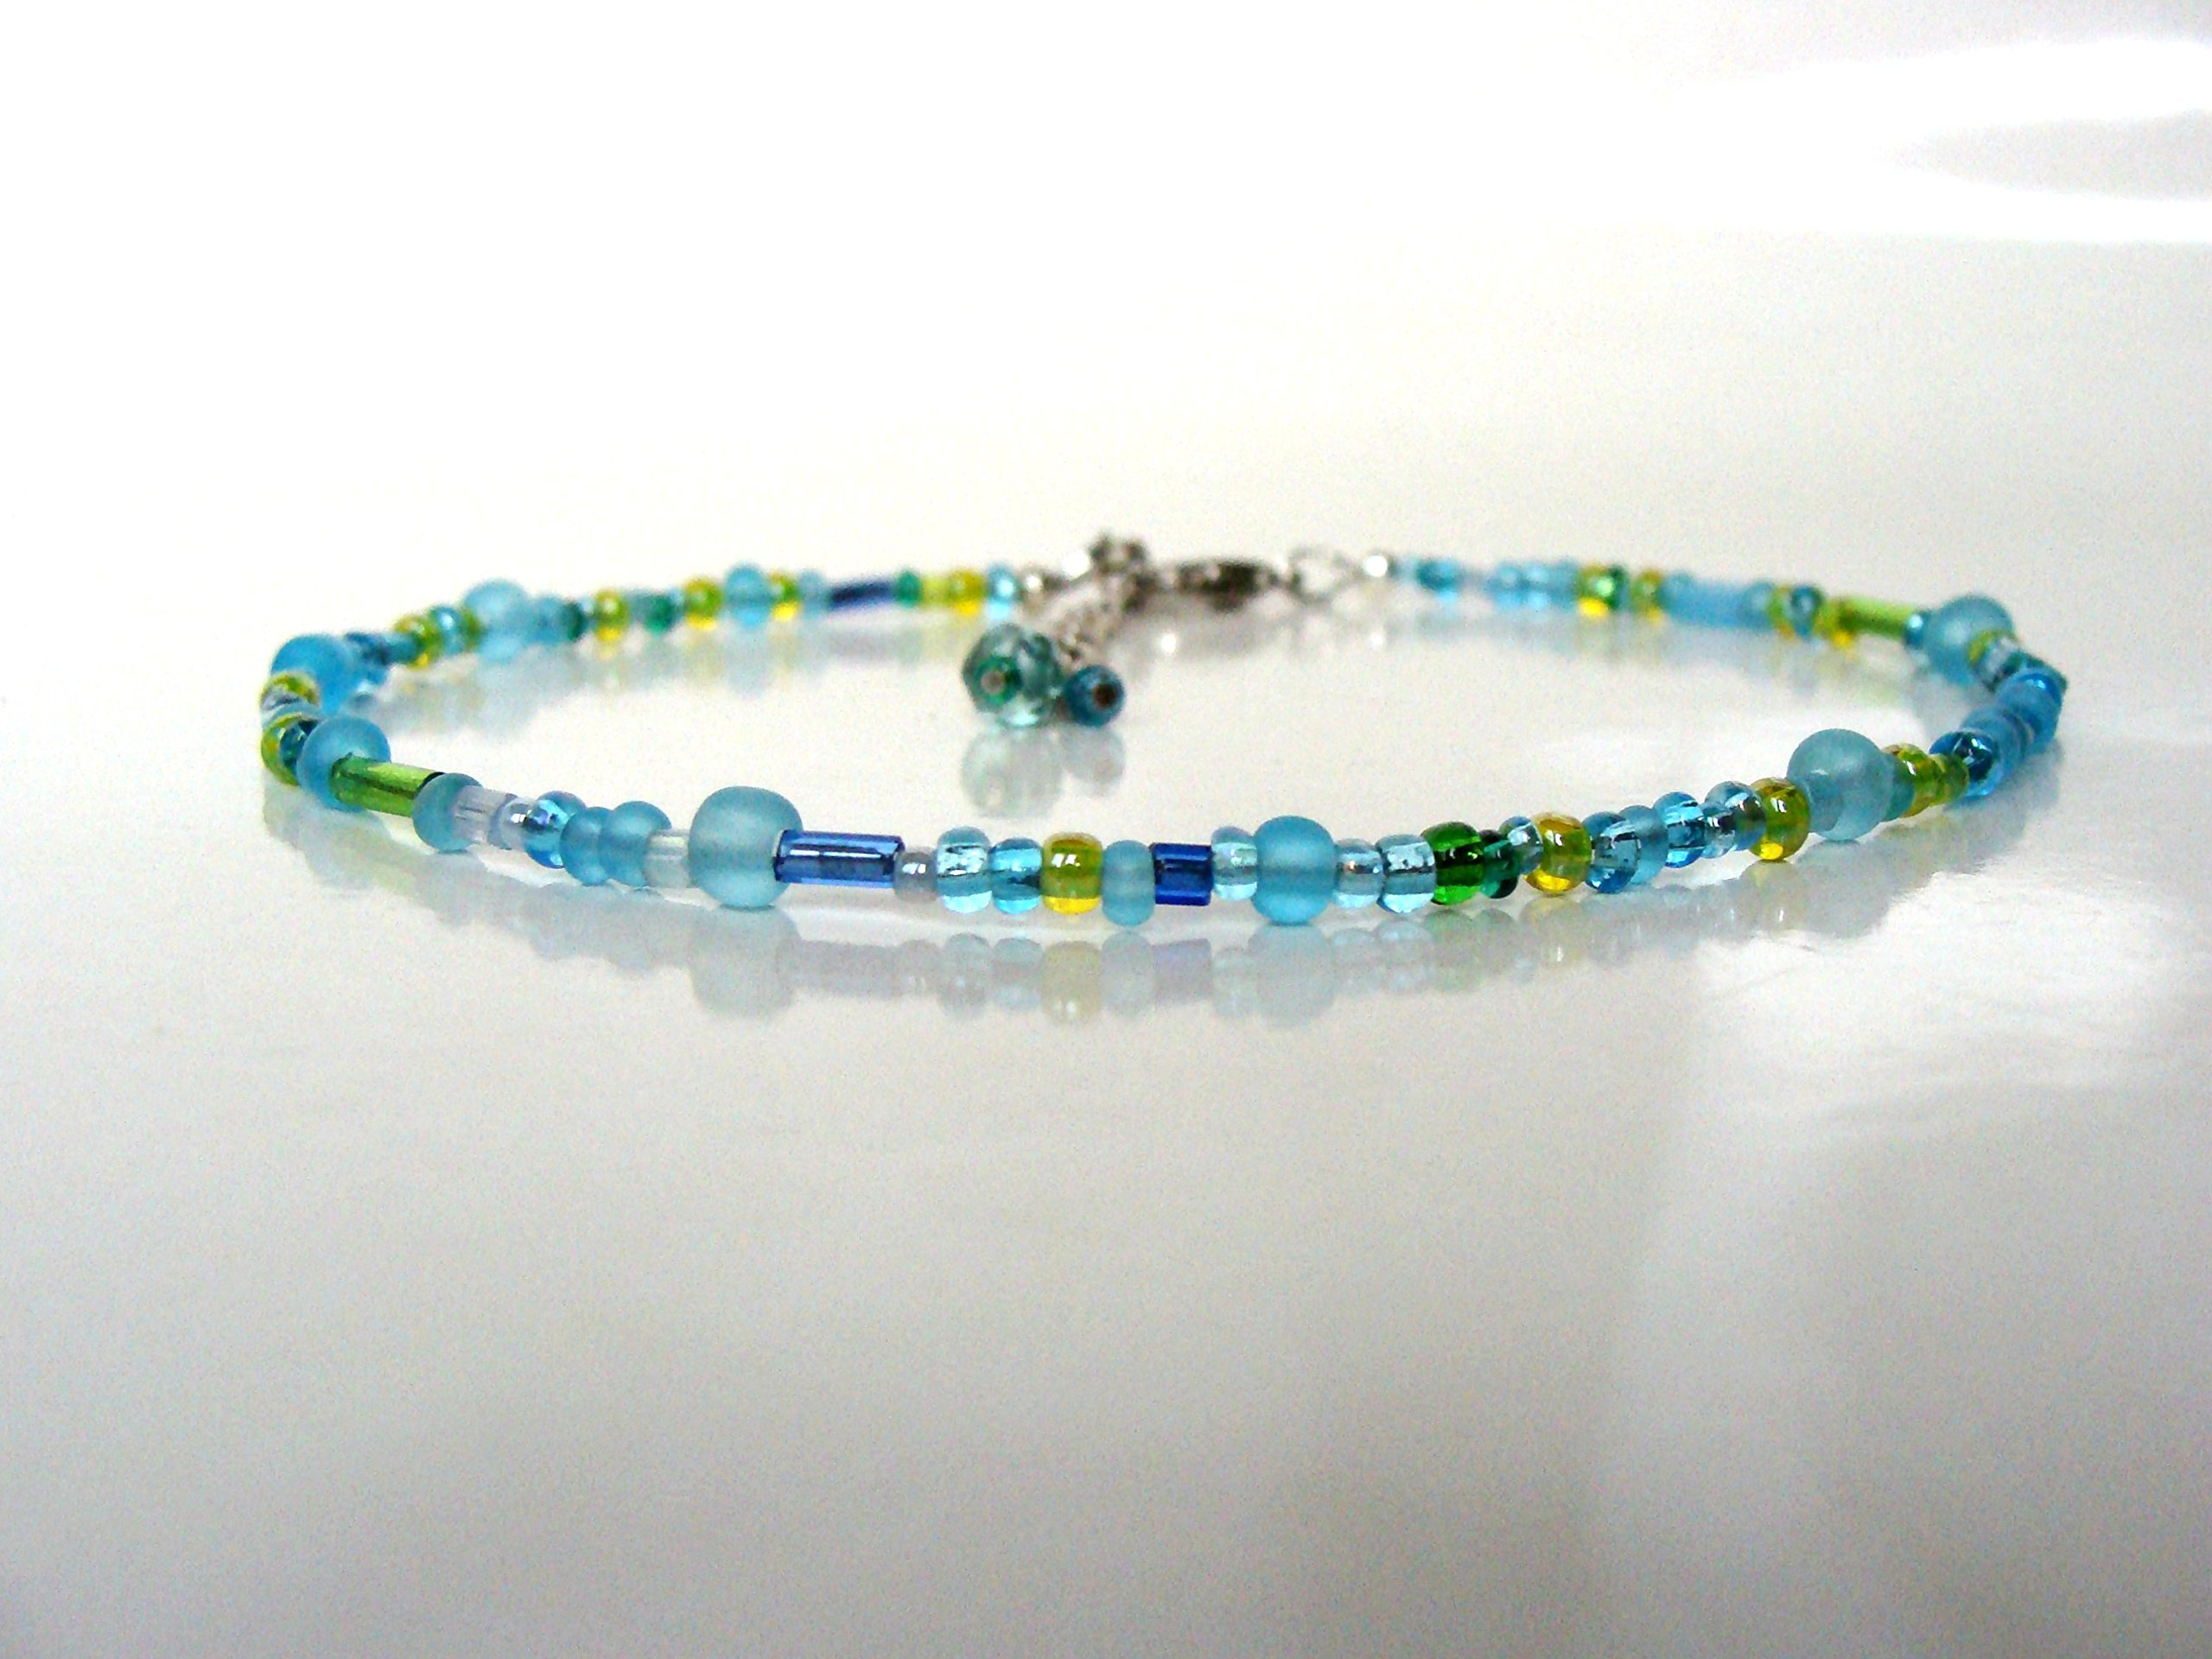 ngacraft Blue green glass bead anklet, mixed glass, sea and sky colors, adjustable, fun summer beach jewelry, handmade, Let Loose Jewelry, under 15